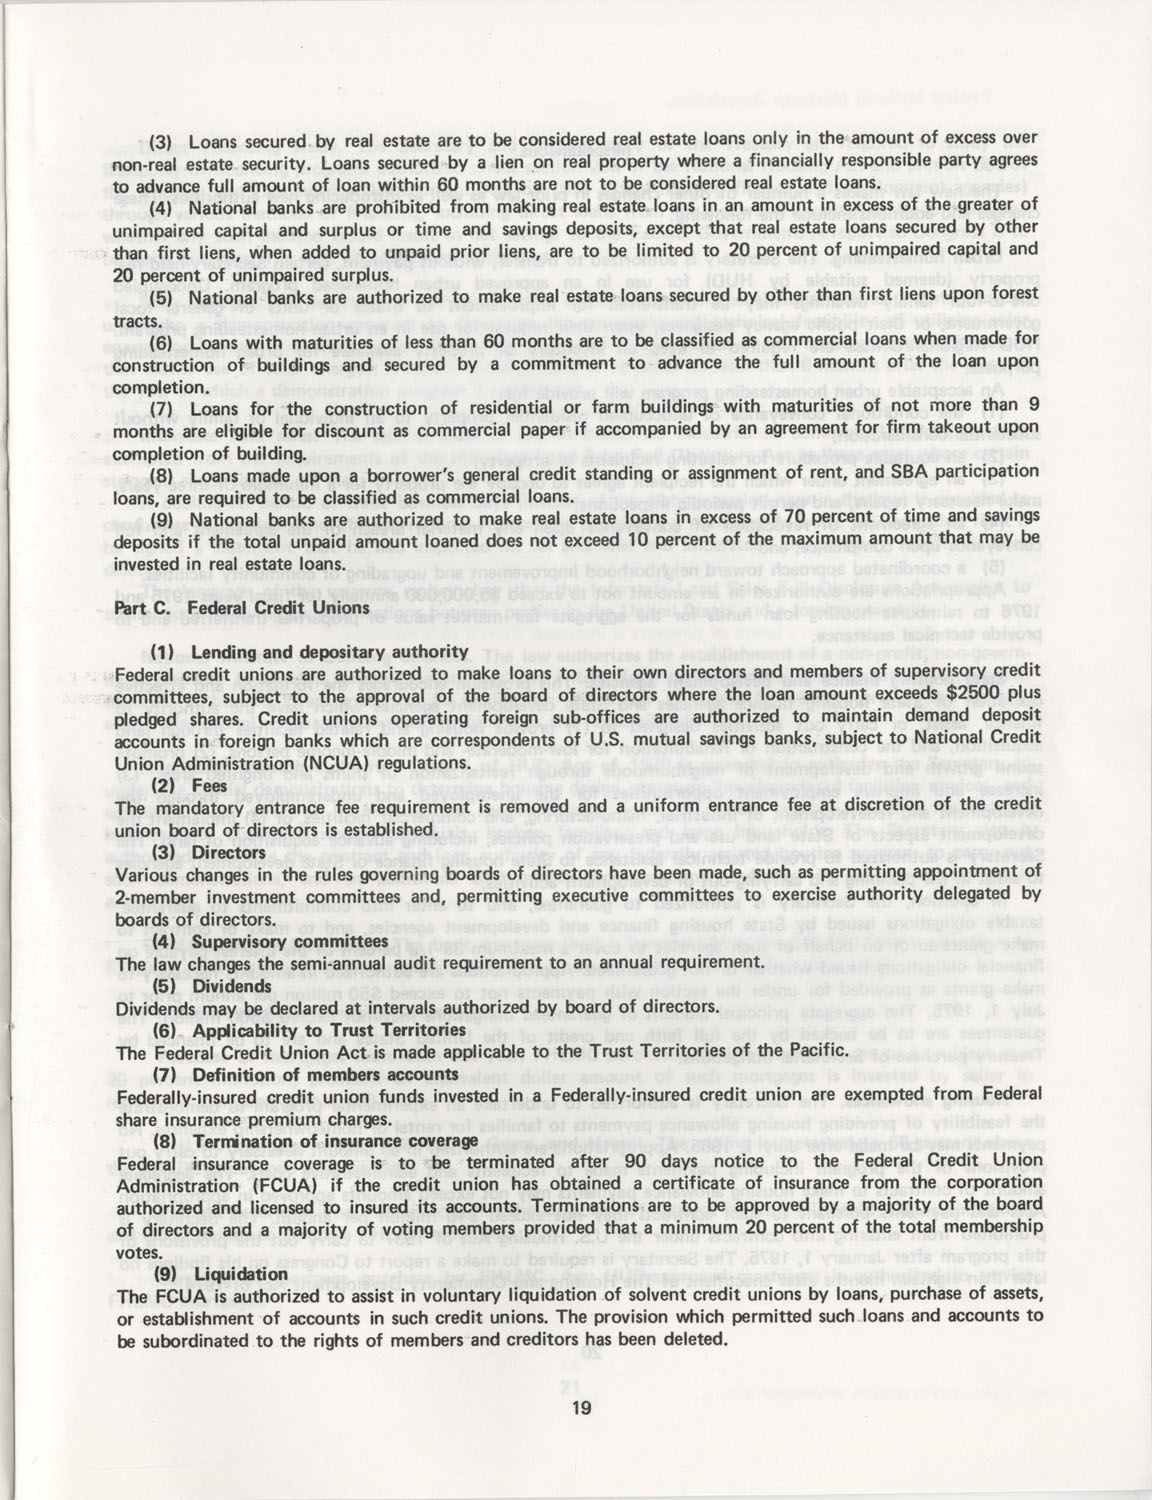 Summary of the Housing and Community Development Act of 1974, Page 19